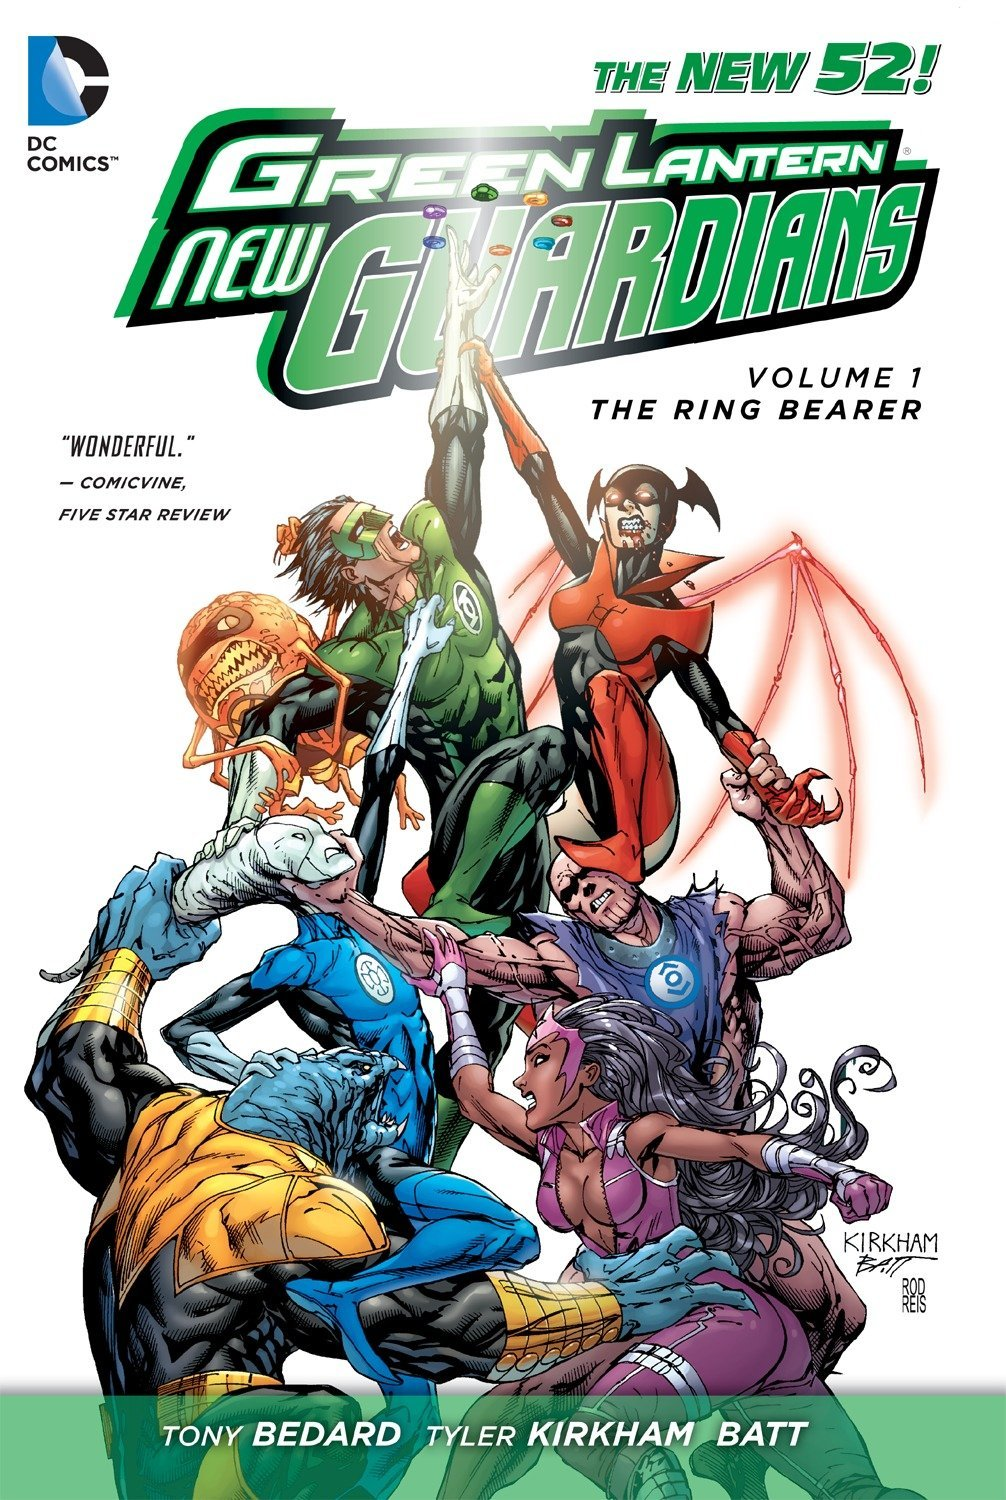 Green Lantern: New Guardians Vol. 1: The Ring Bearer